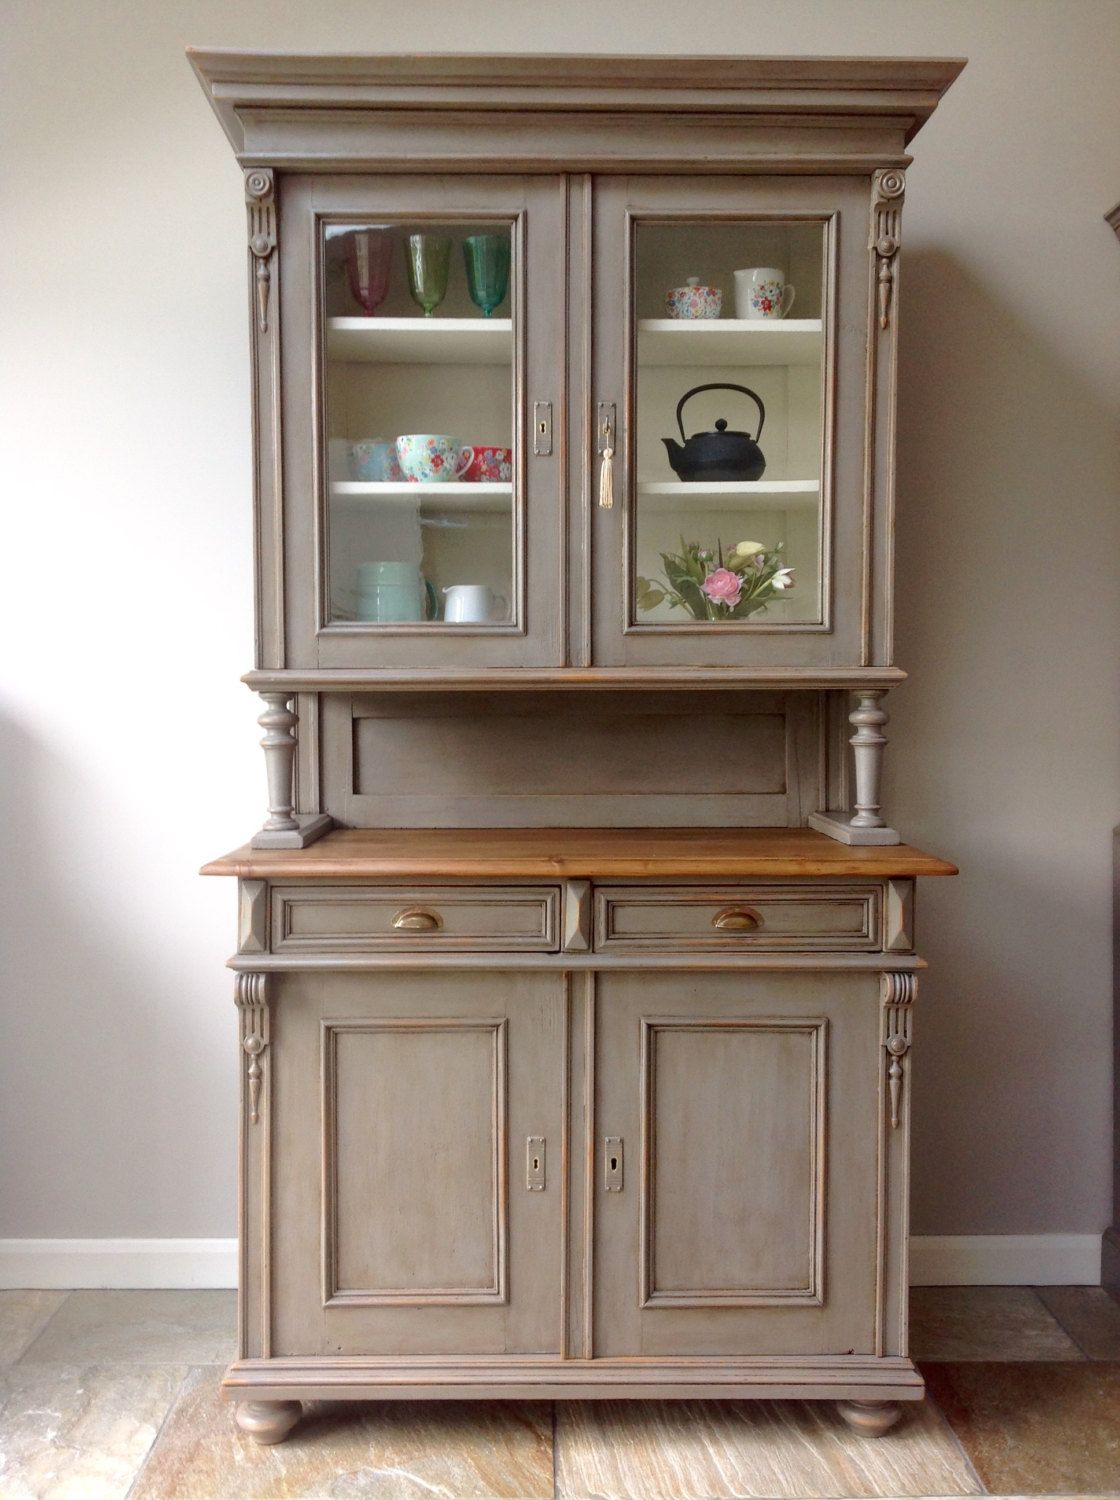 Shabby Chic Kitchen Furniture Stunning Welsh Dresser Younger Toledo Shabby Chic Display Cabinet